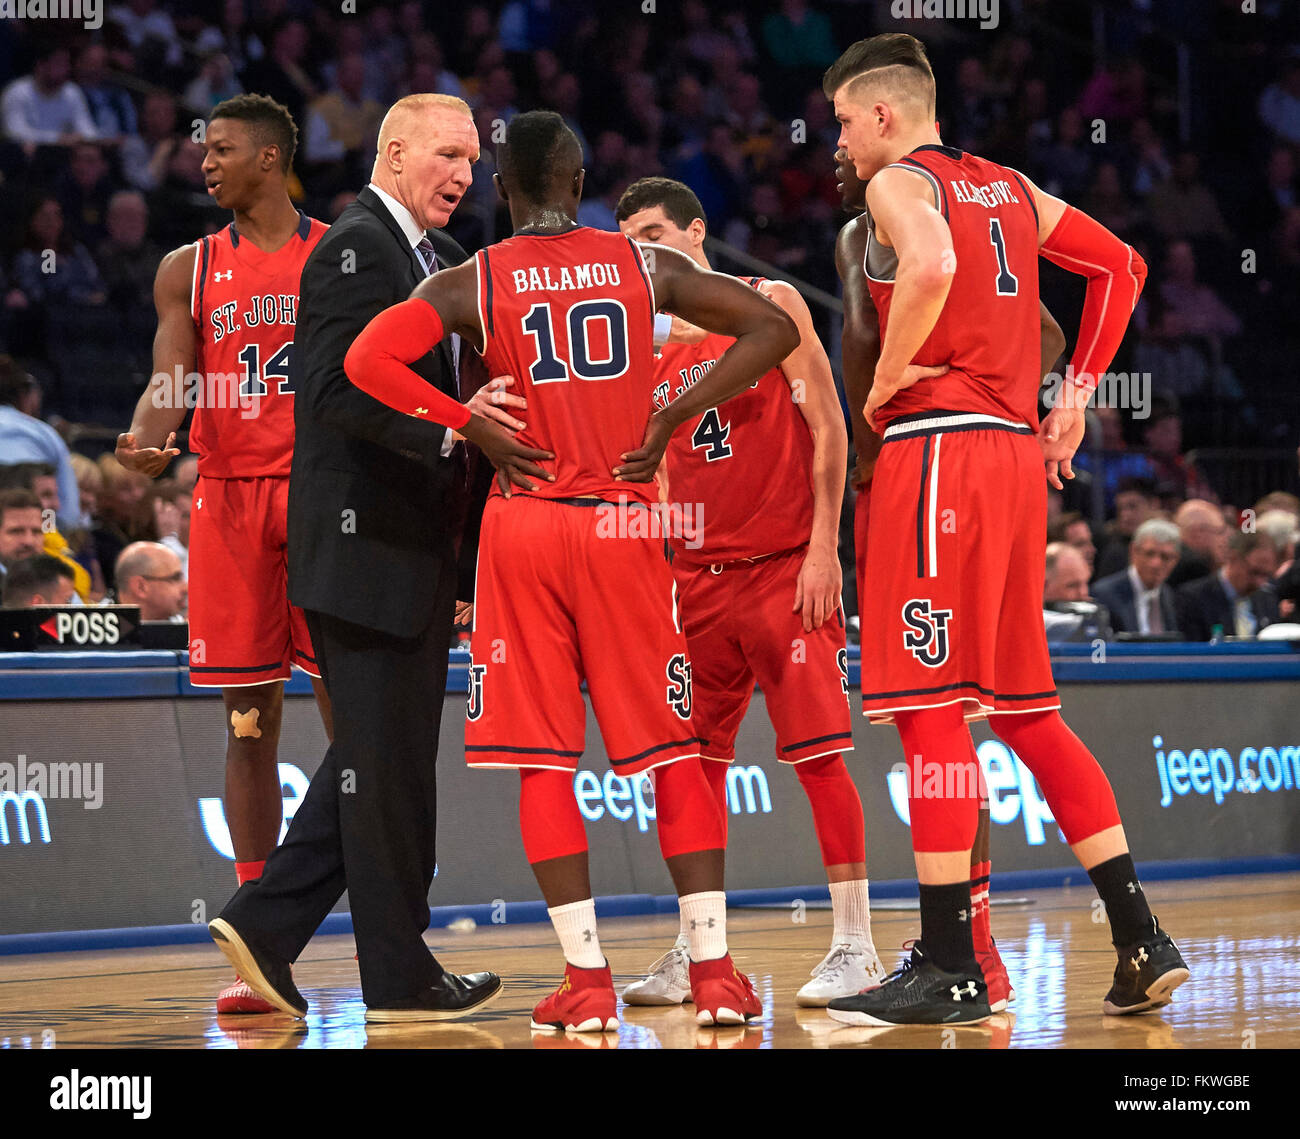 New York New York Usa 9th Mar 2016 St Johns Head Coach Chris Mullin Give Game Instructions During First Round Big East Tournament Between The St Johns Red Storm And The Marquette